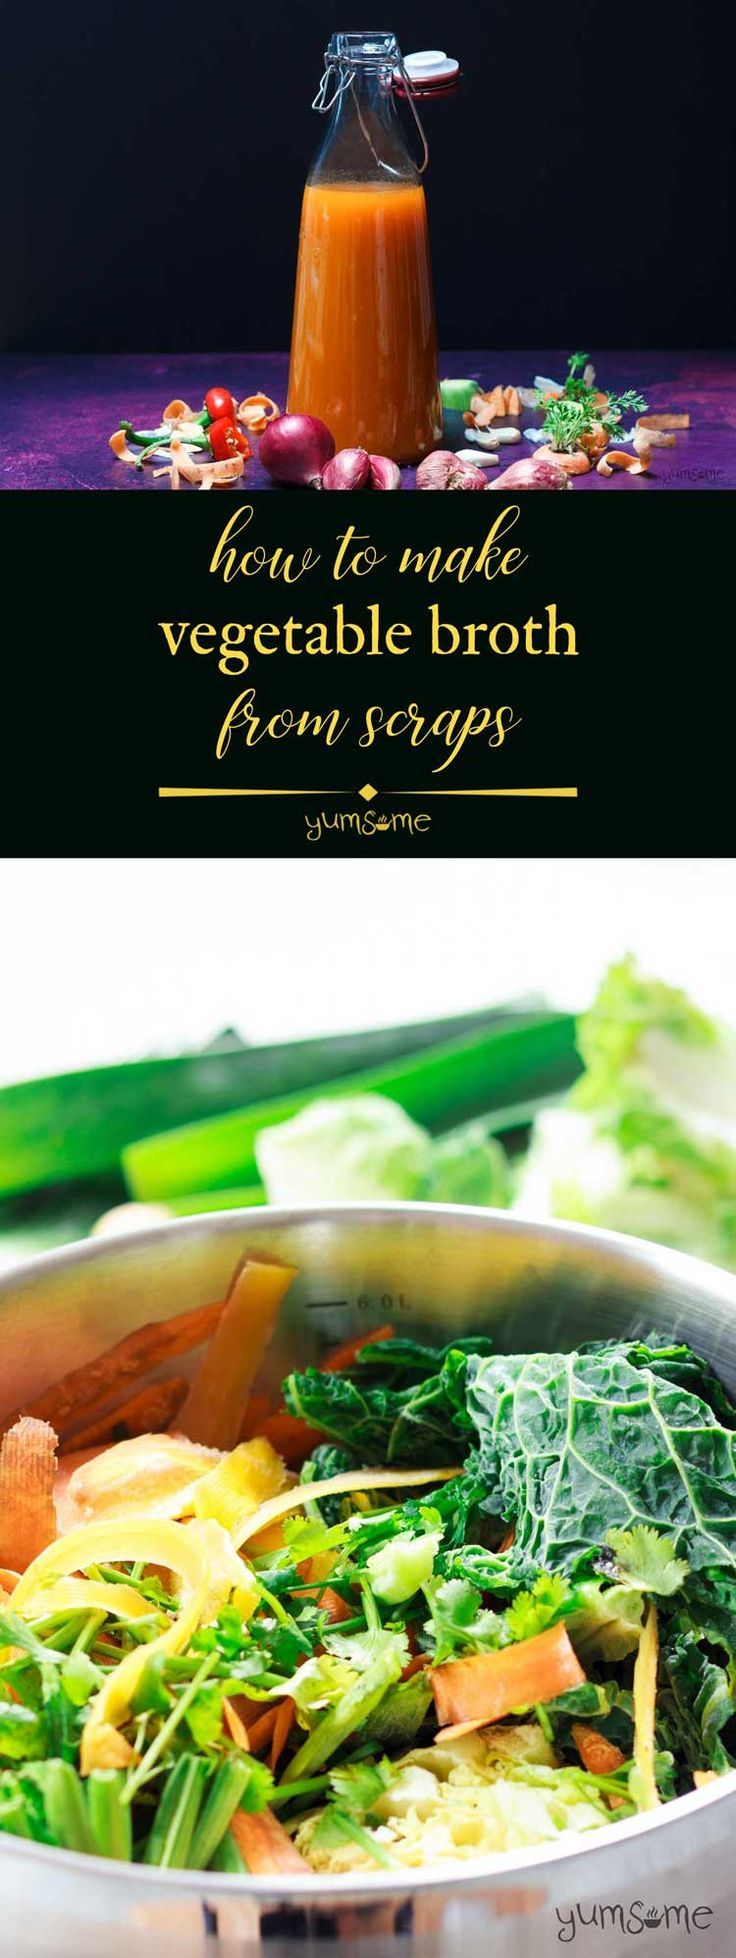 This #vegetable #broth is really simple to make, and requires justone pot, a bag of veggie scraps, and a few herbs. And yes, it's completely #vegan!   yumsome.com via @yums0me